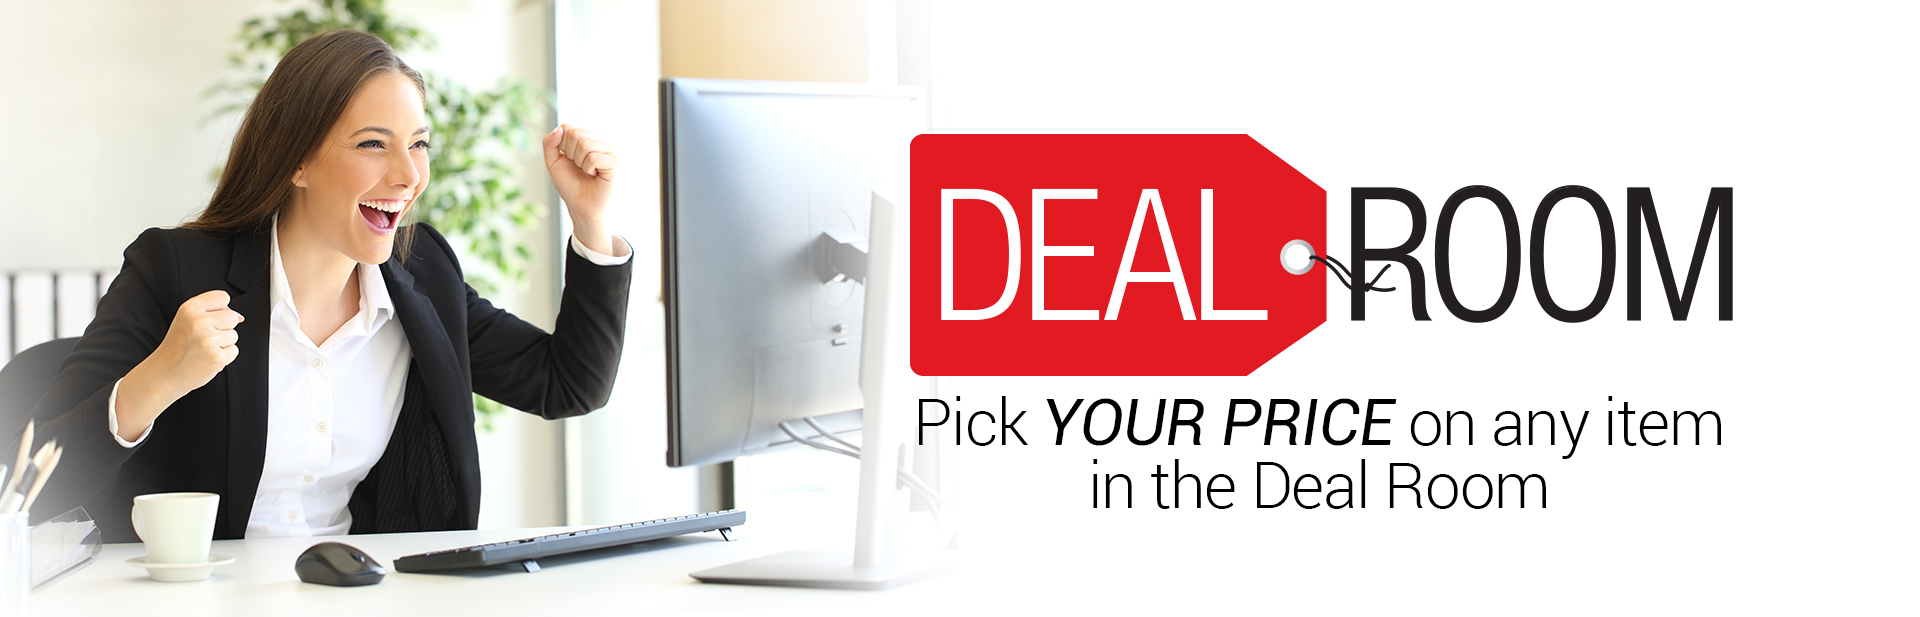 Pick your price on any item in the Deal Room